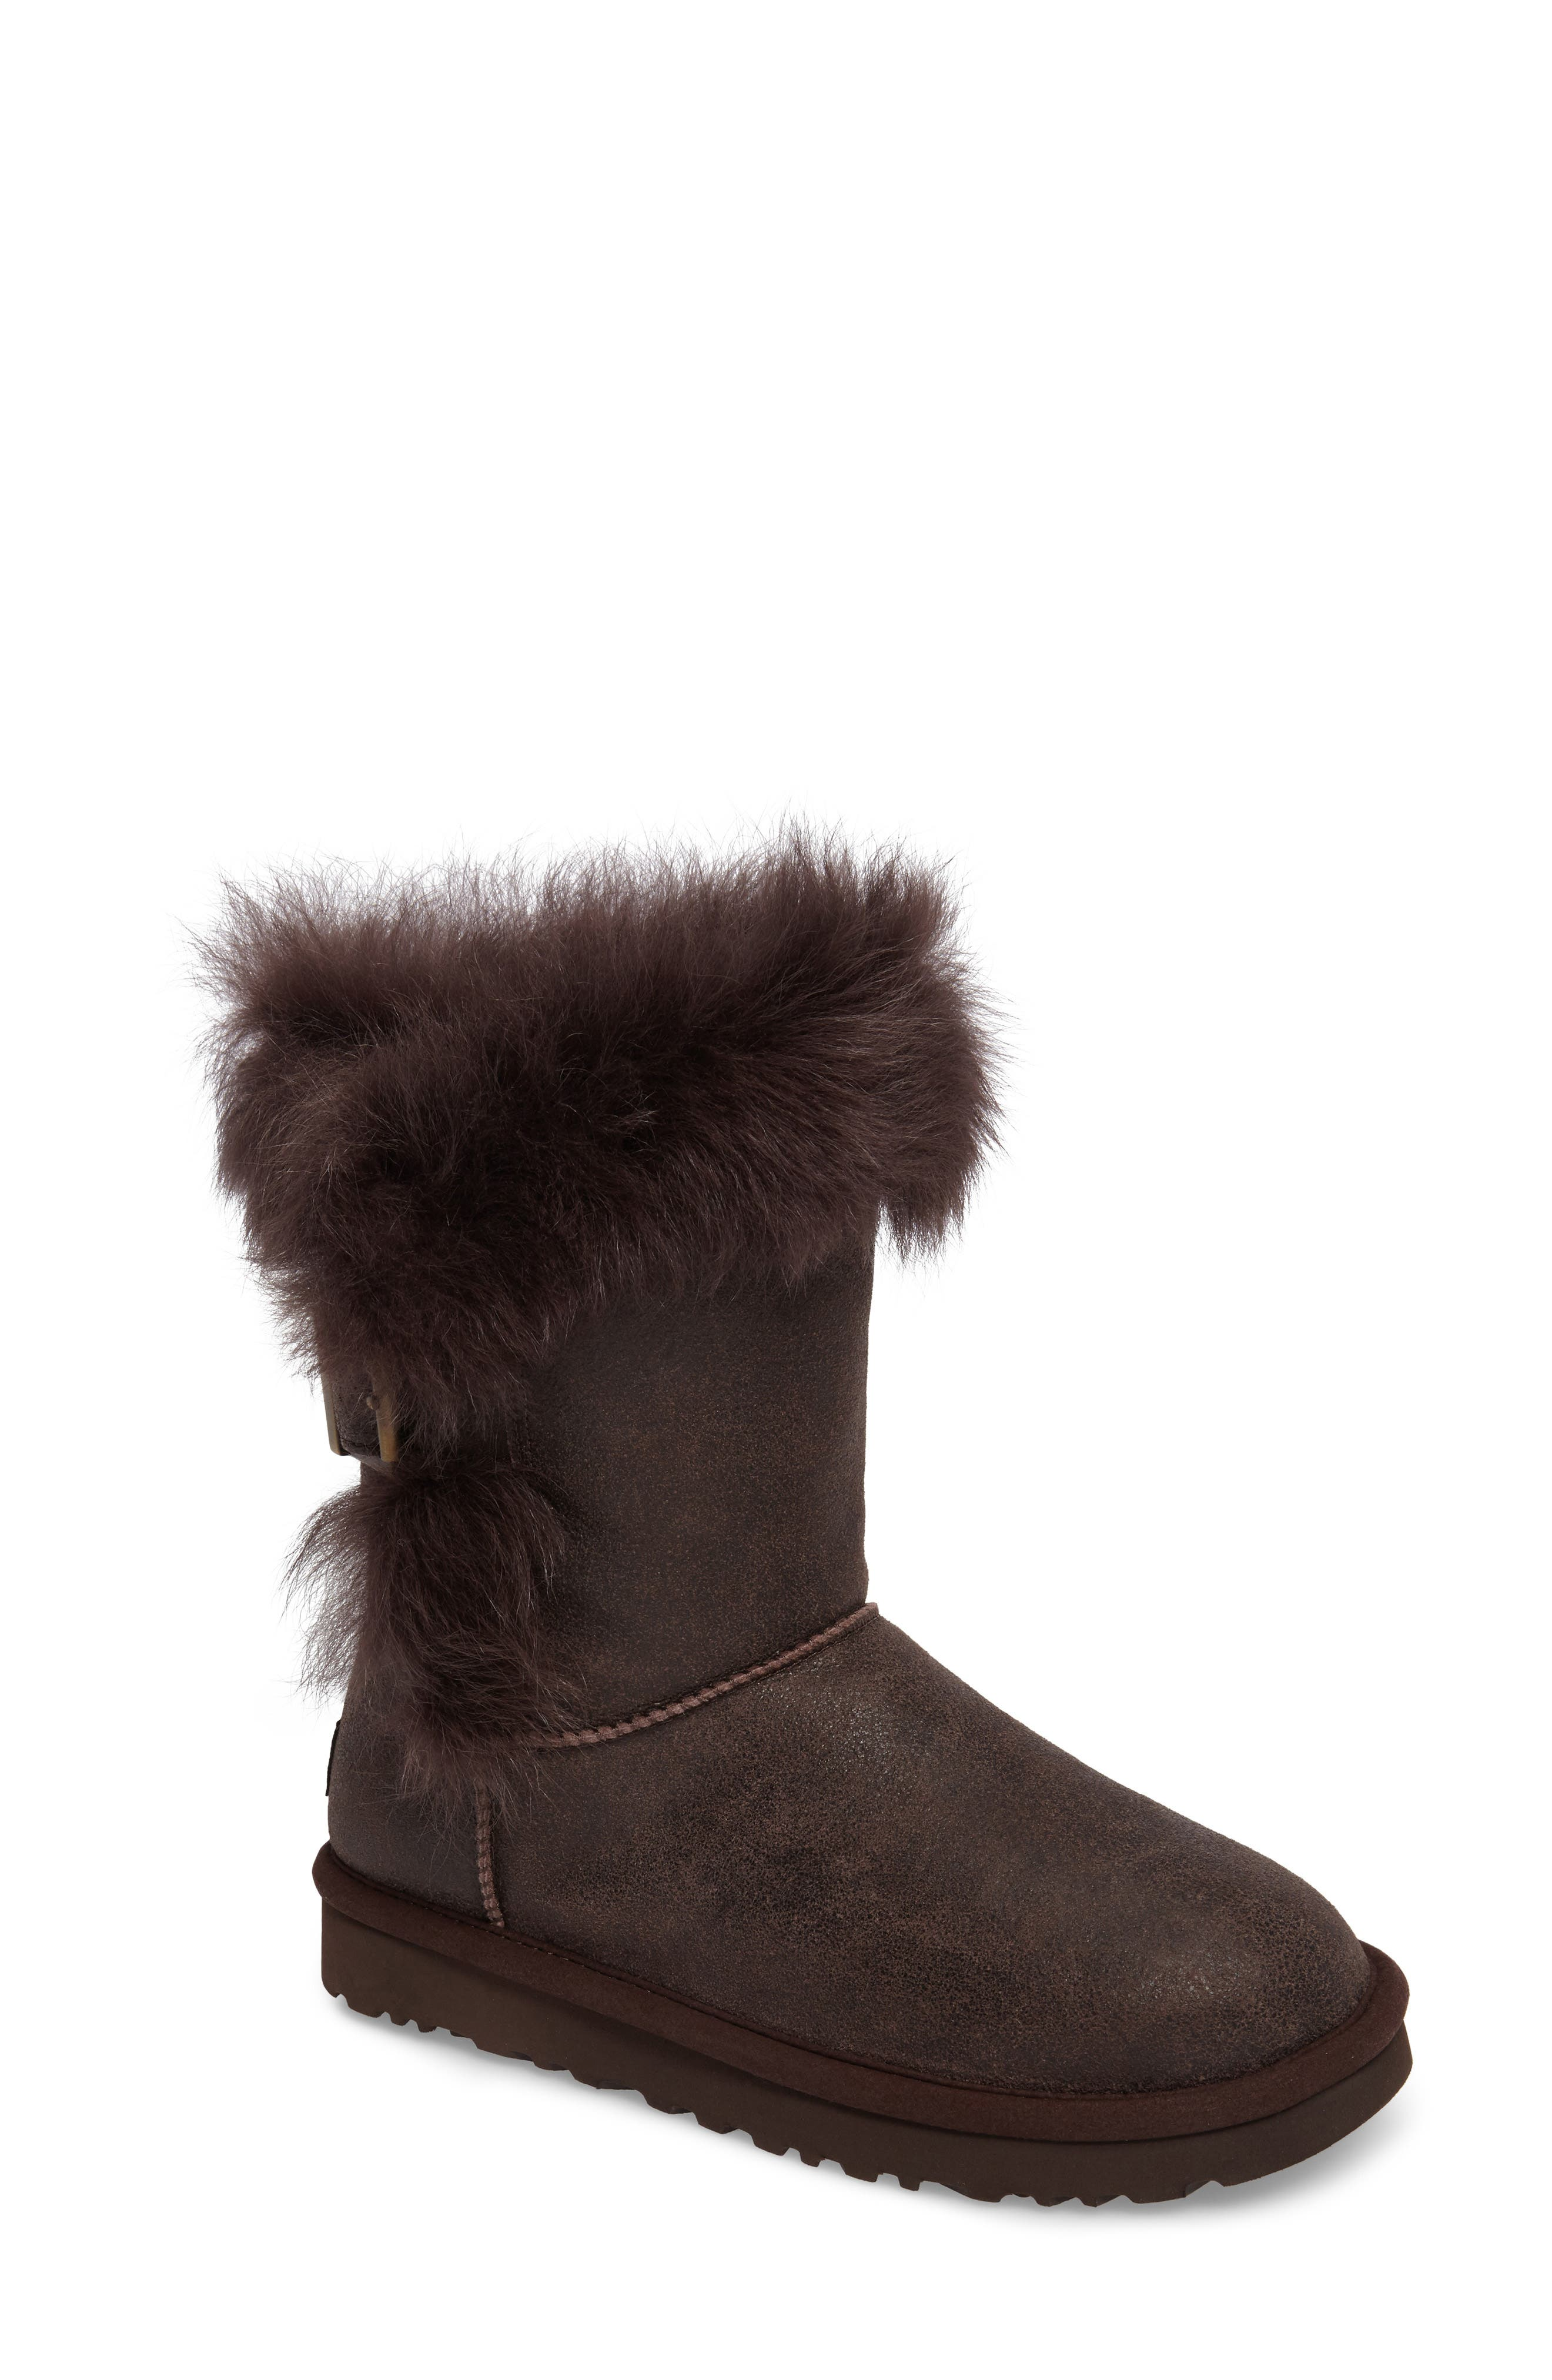 Deena Boot,                         Main,                         color, Stout Suede